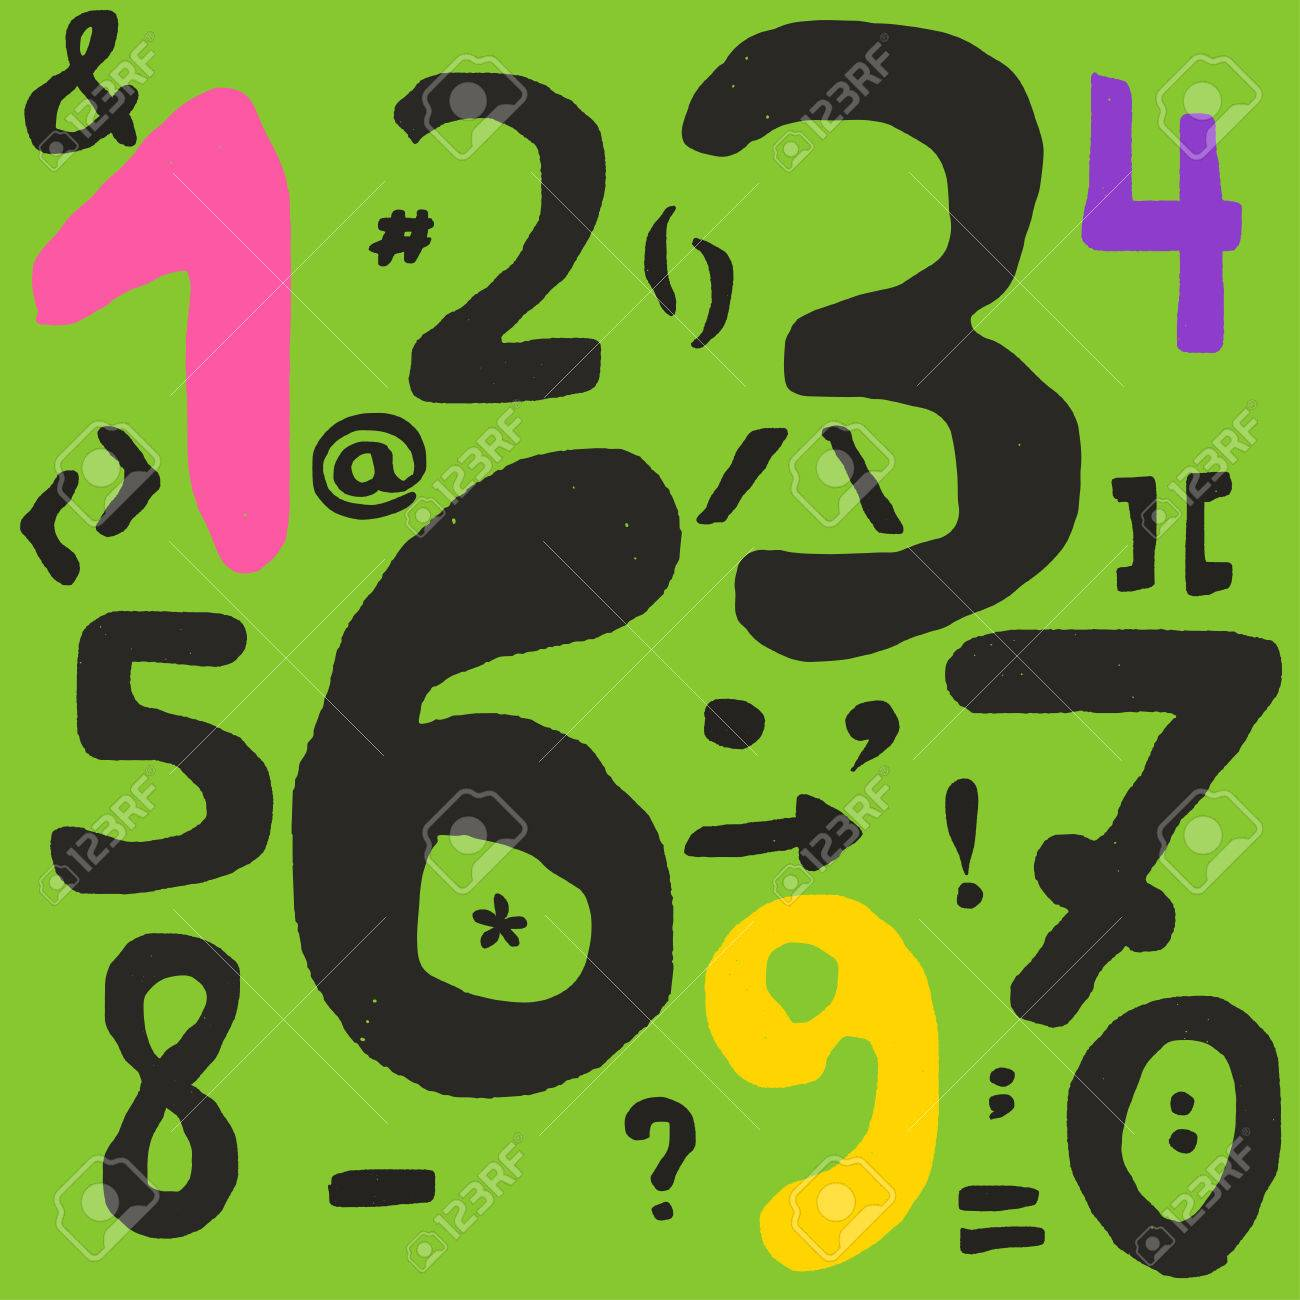 Hand drawn numbers and math symbols with inaccurate lines fill hand drawn numbers and math symbols with inaccurate lines fill of symbols has tiny holes biocorpaavc Choice Image